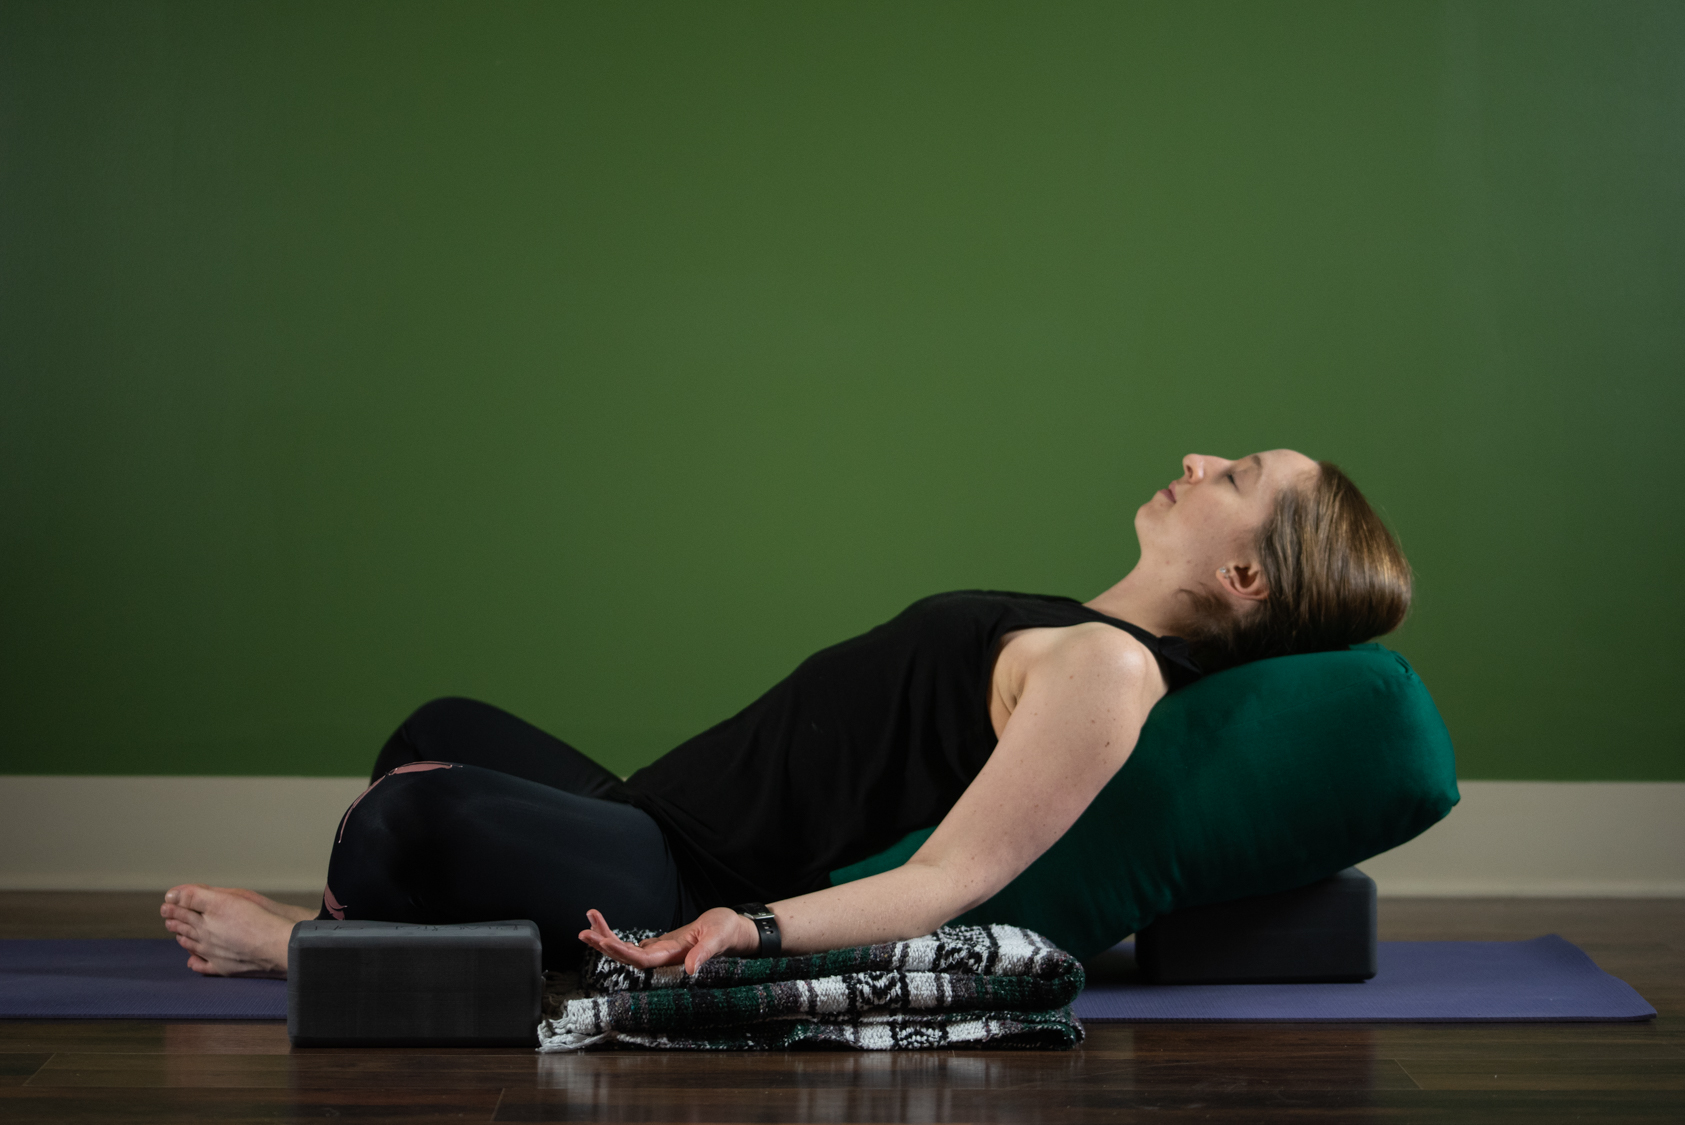 Restorative or Yin Yoga - These gentle, relaxing classes are the perfect balance to our fast-paced culture. Each class includes fewer poses held for longer periods of time. Guided meditation, calming mindful breathing, and props may all be used to help aid towards relaxation.For adults or kids 15 and up or under 15 with an adult practicing too. All levels, great for beginners.